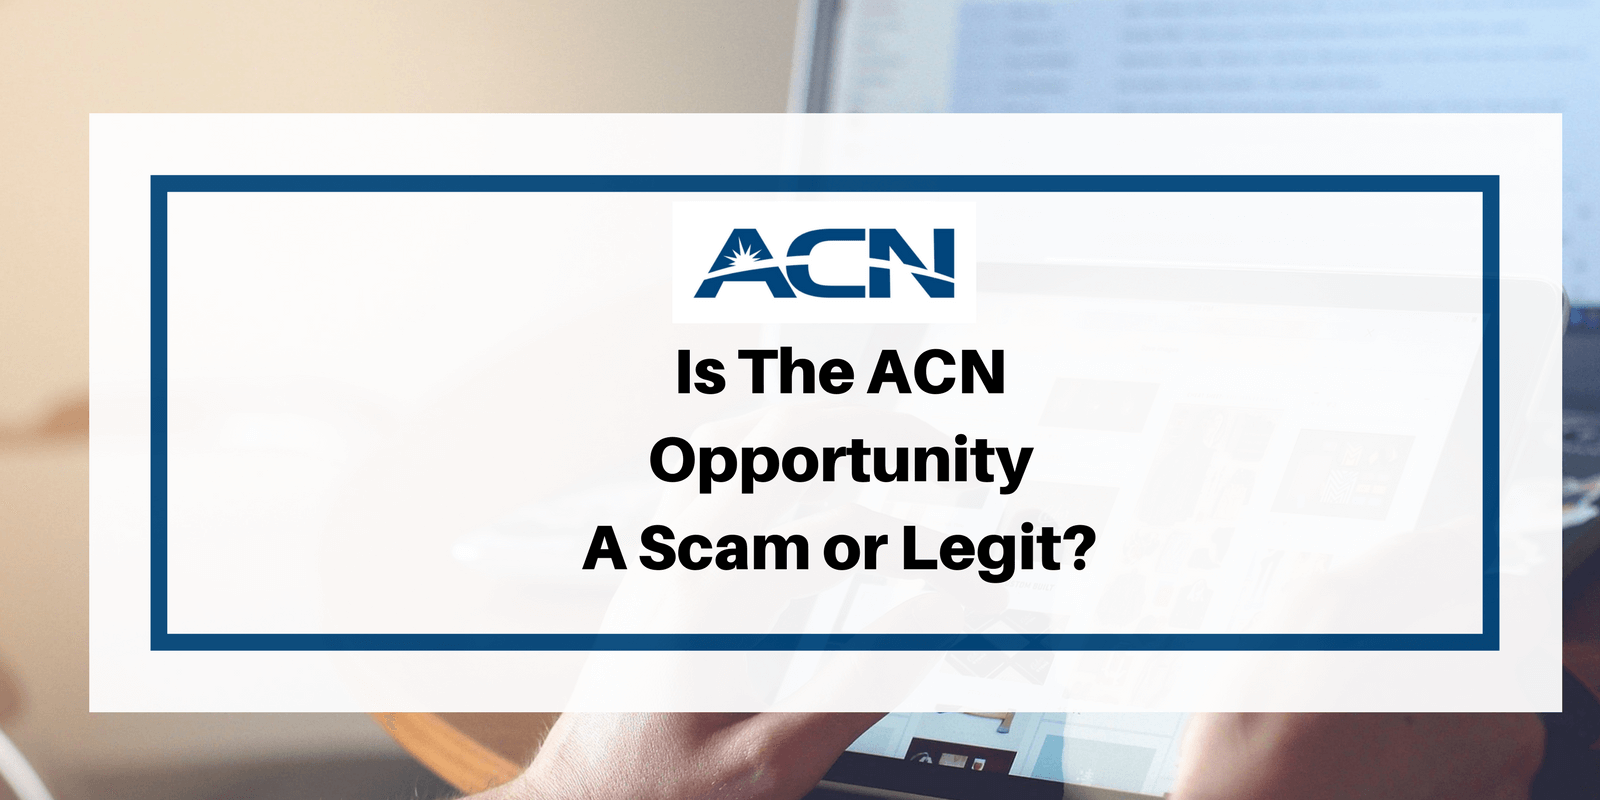 ACN, Inc. (@acnnews) | Twitter